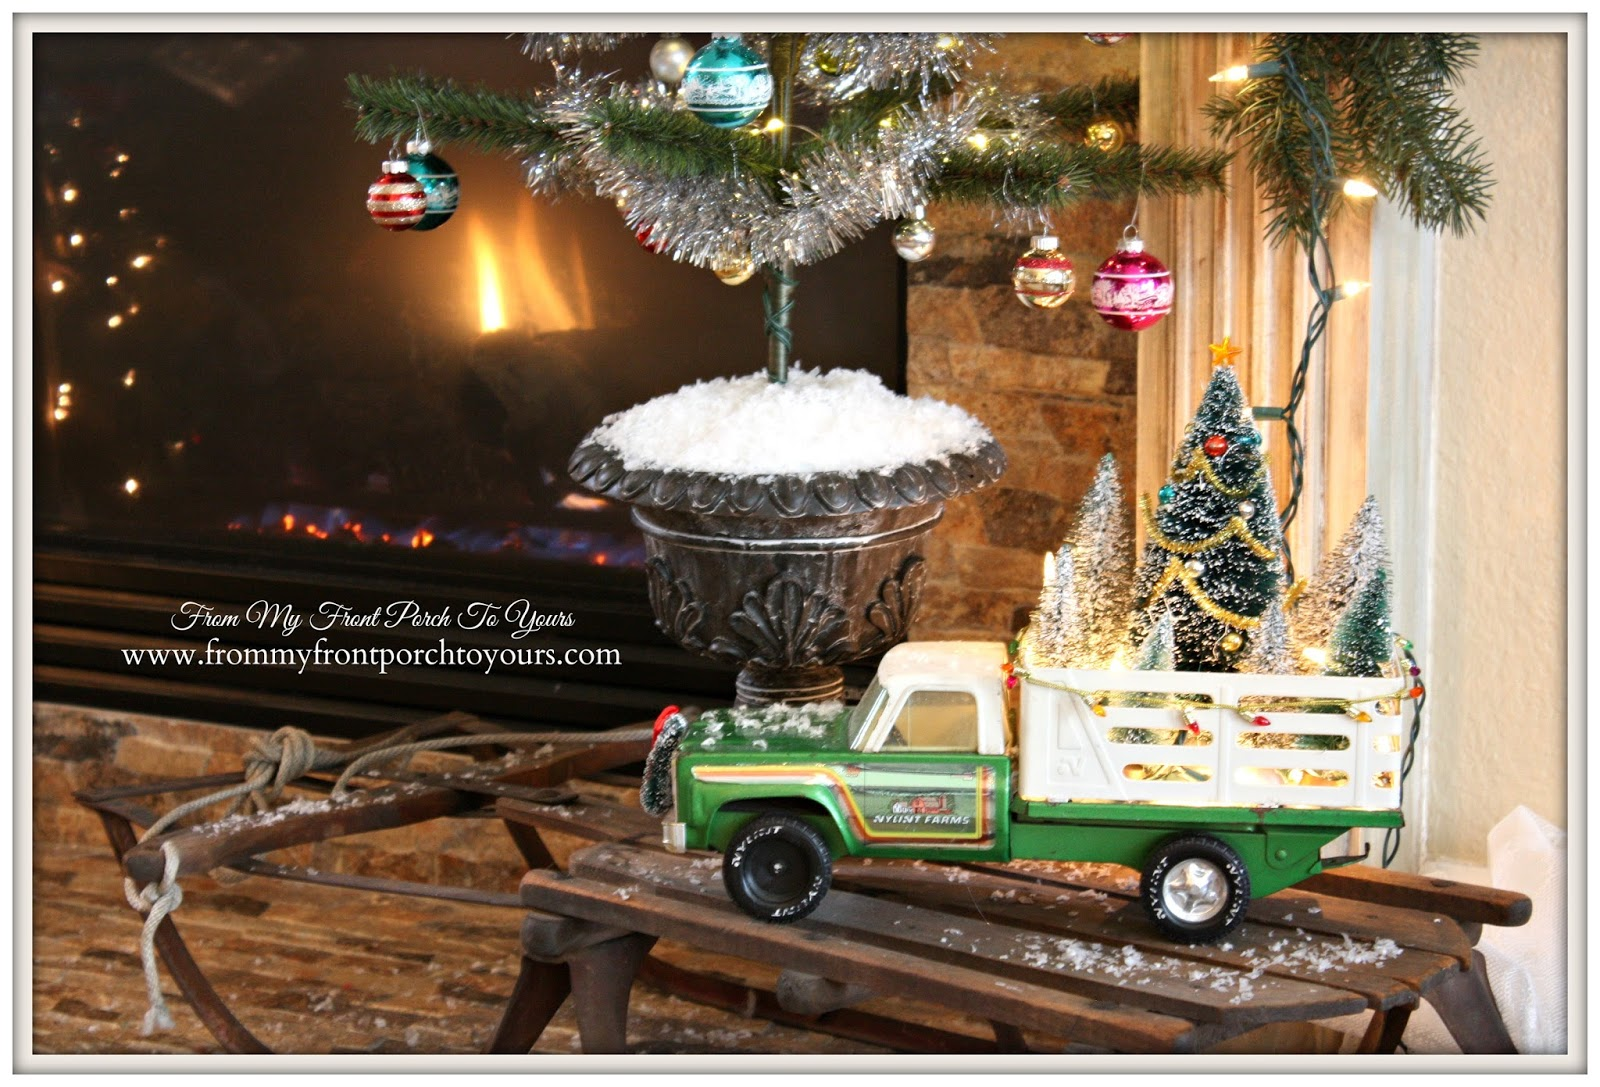 French Farmhouse-Christmas Mantel- Vintage-Toy-Truck-From My Front Porch To Yours